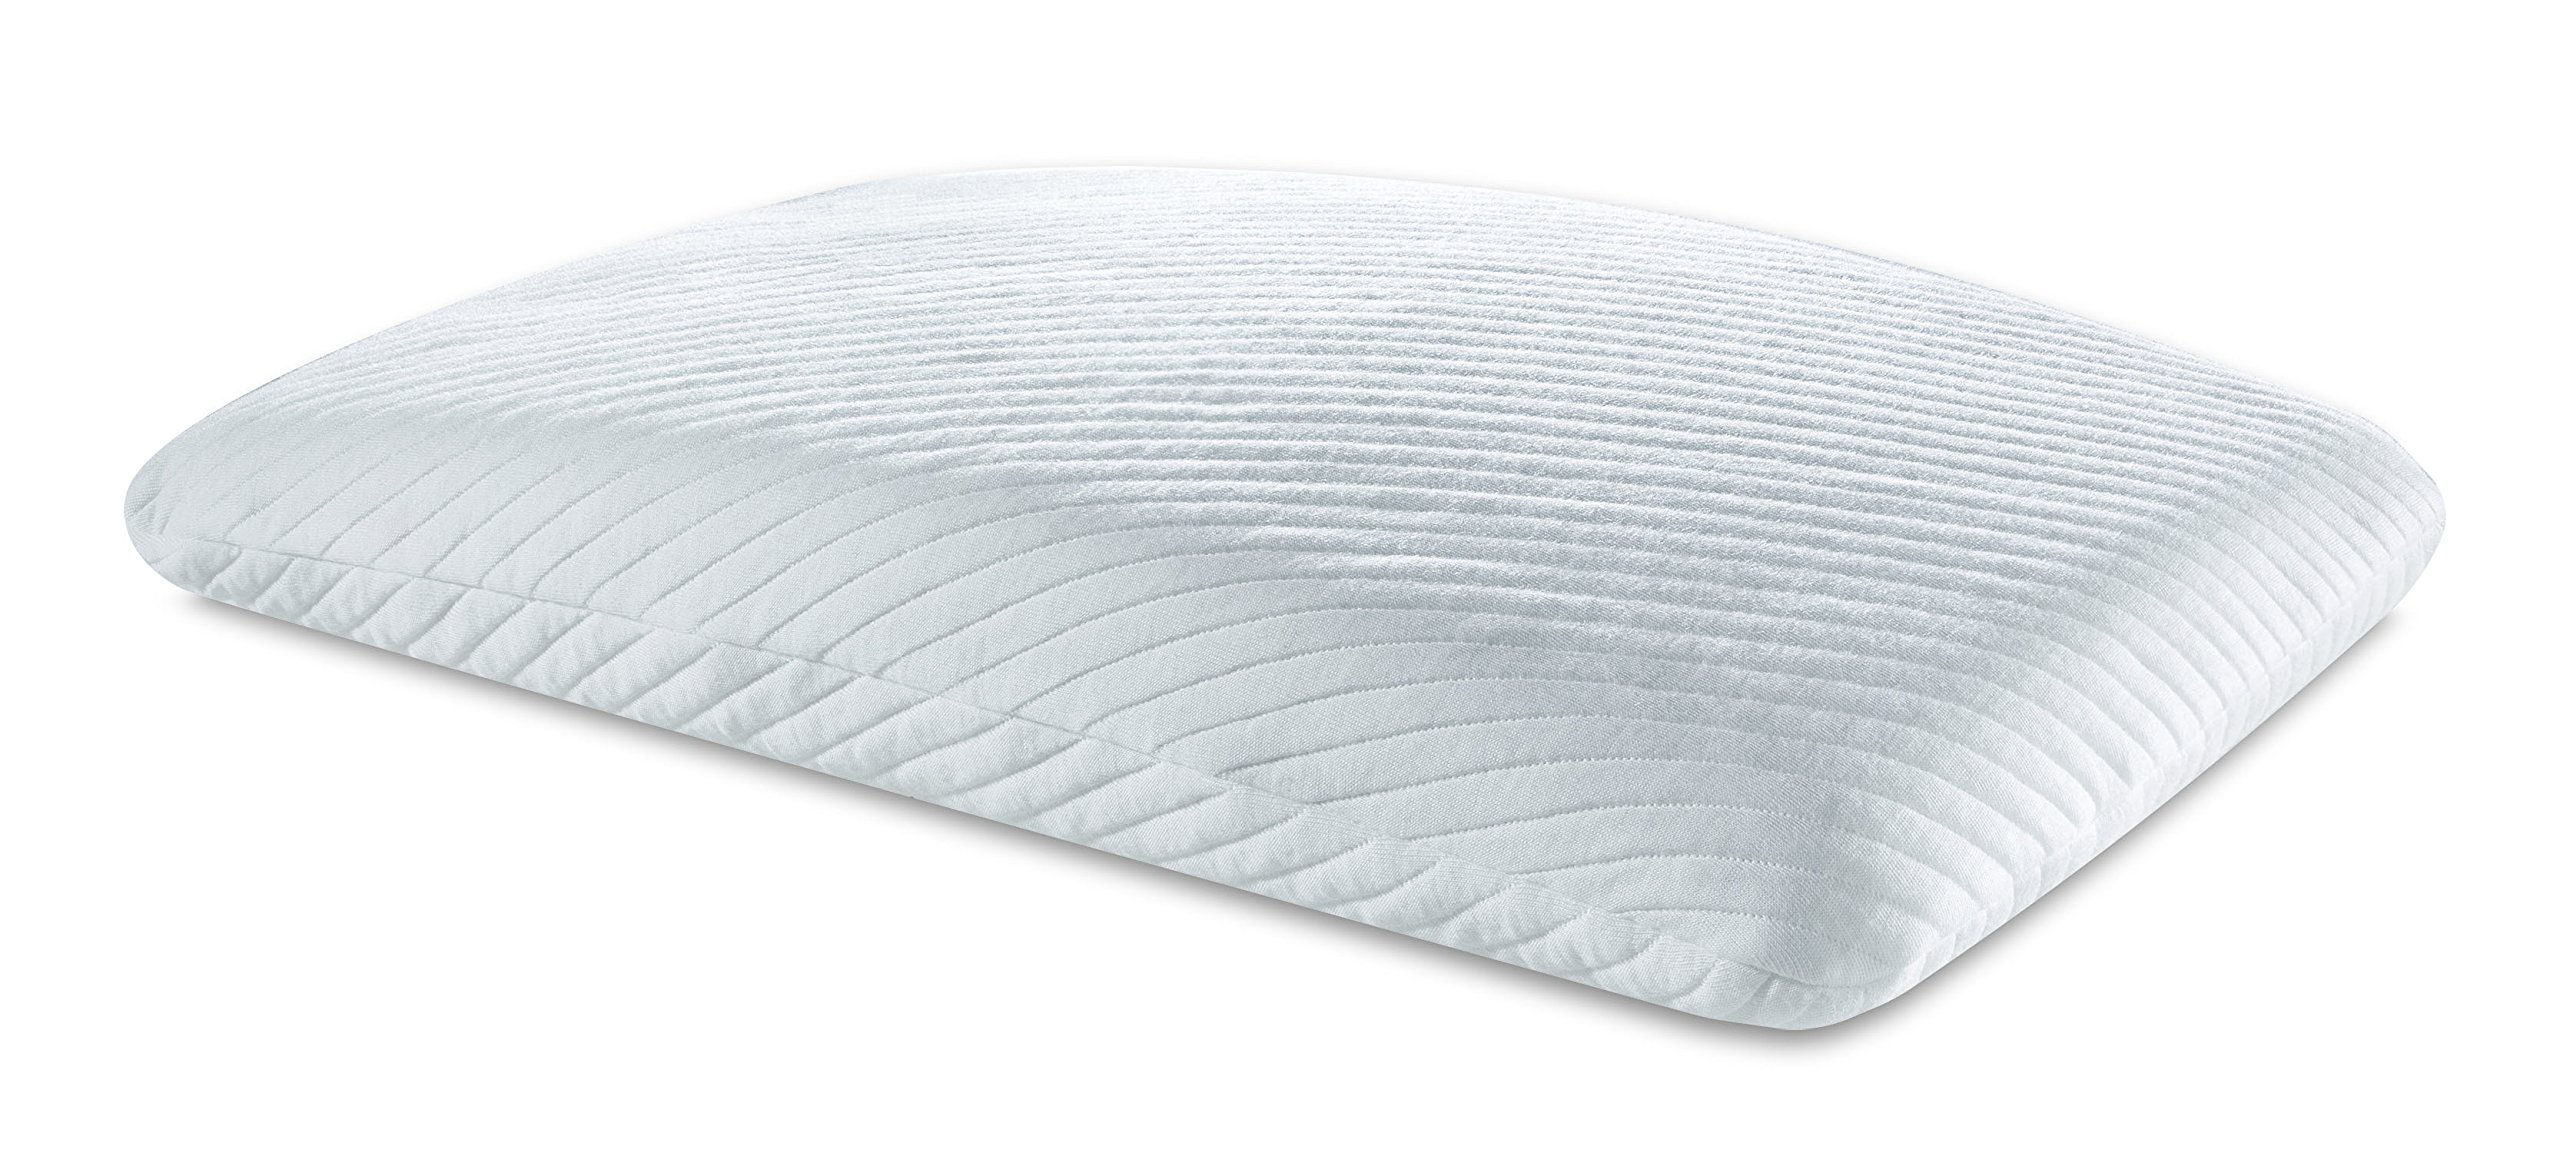 템퍼페딕 템퍼 에센셜 베개, 소프트 서프트 워셔블 커버 TEMPUR-PEDIC Tempur-Pedic TEMPUR Essential Pillow, Soft Support, Adaptable Comfort Washable Cover, Assembled in the USA